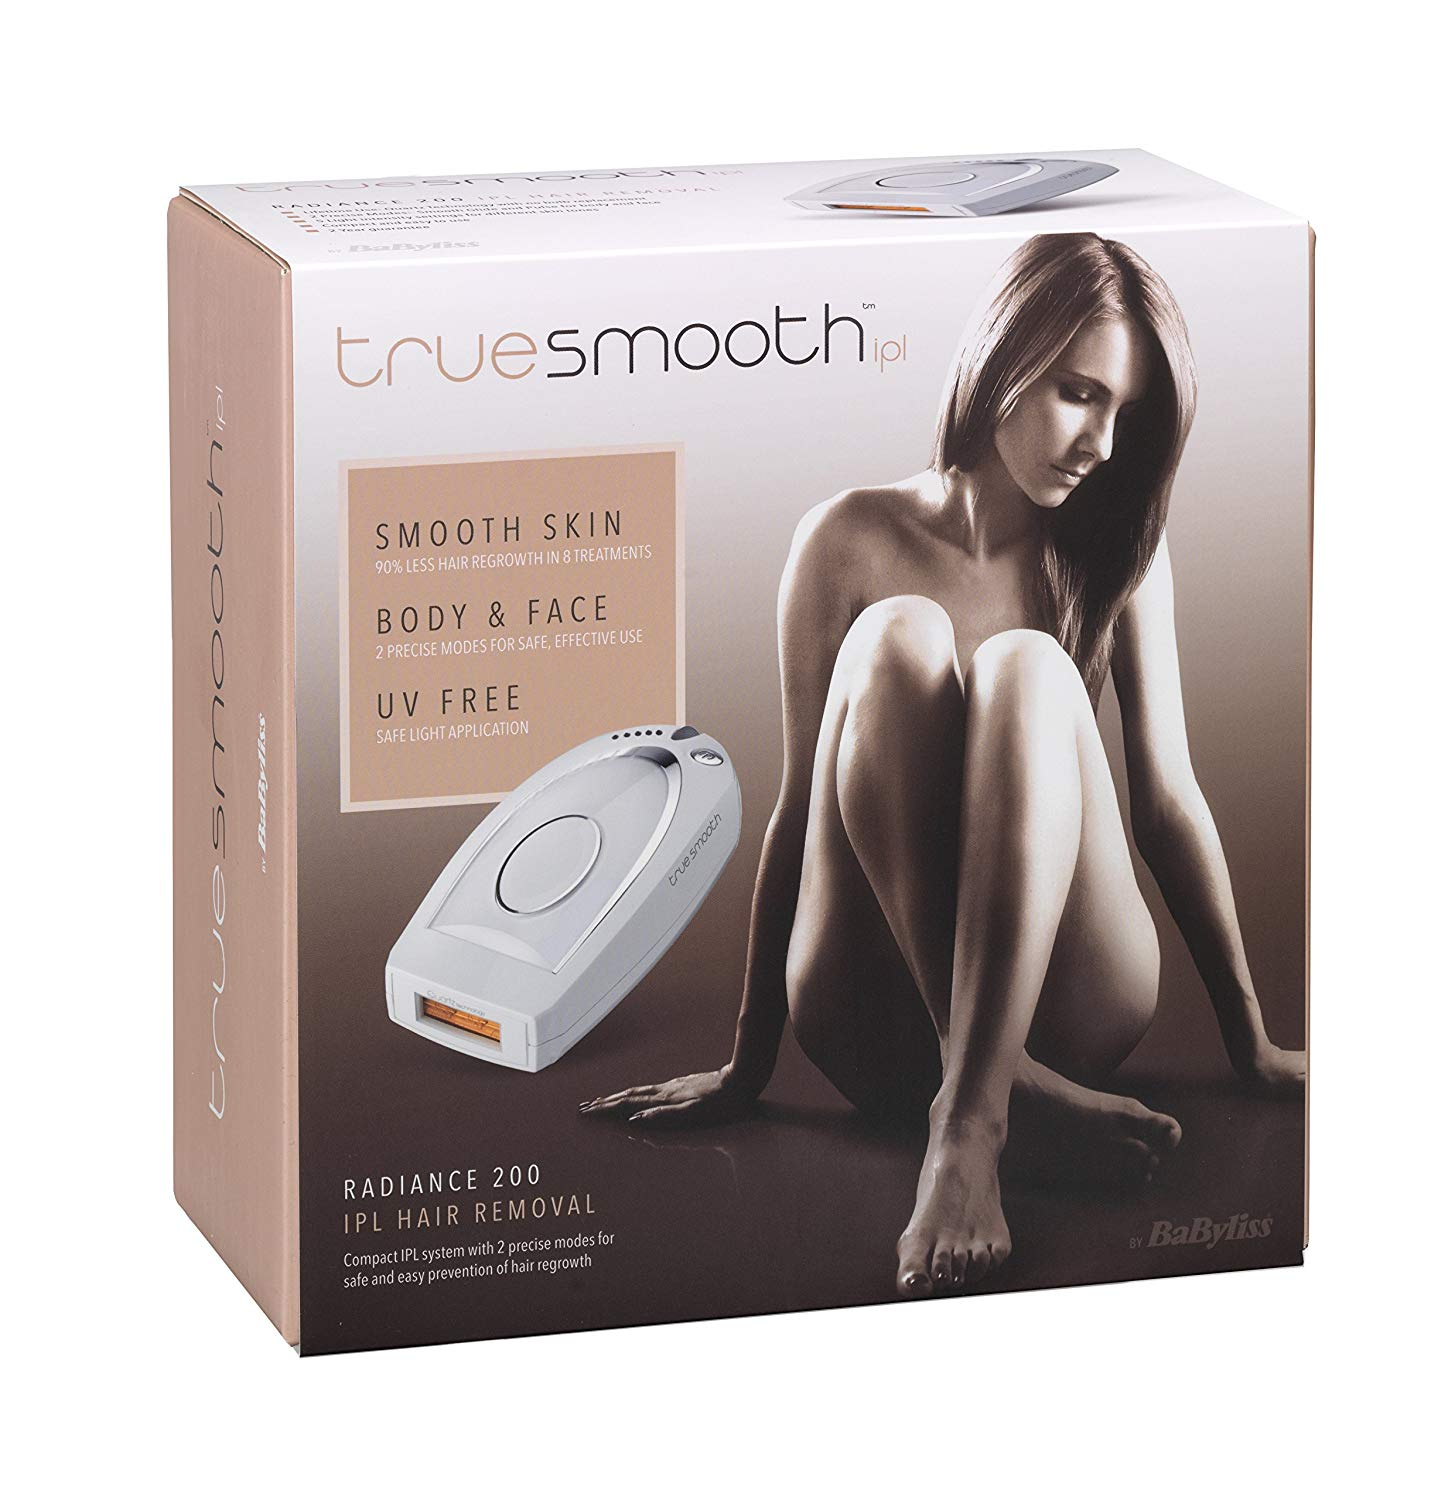 35011 - Babyliss Tru Smooth Hair Removal IPL Europe